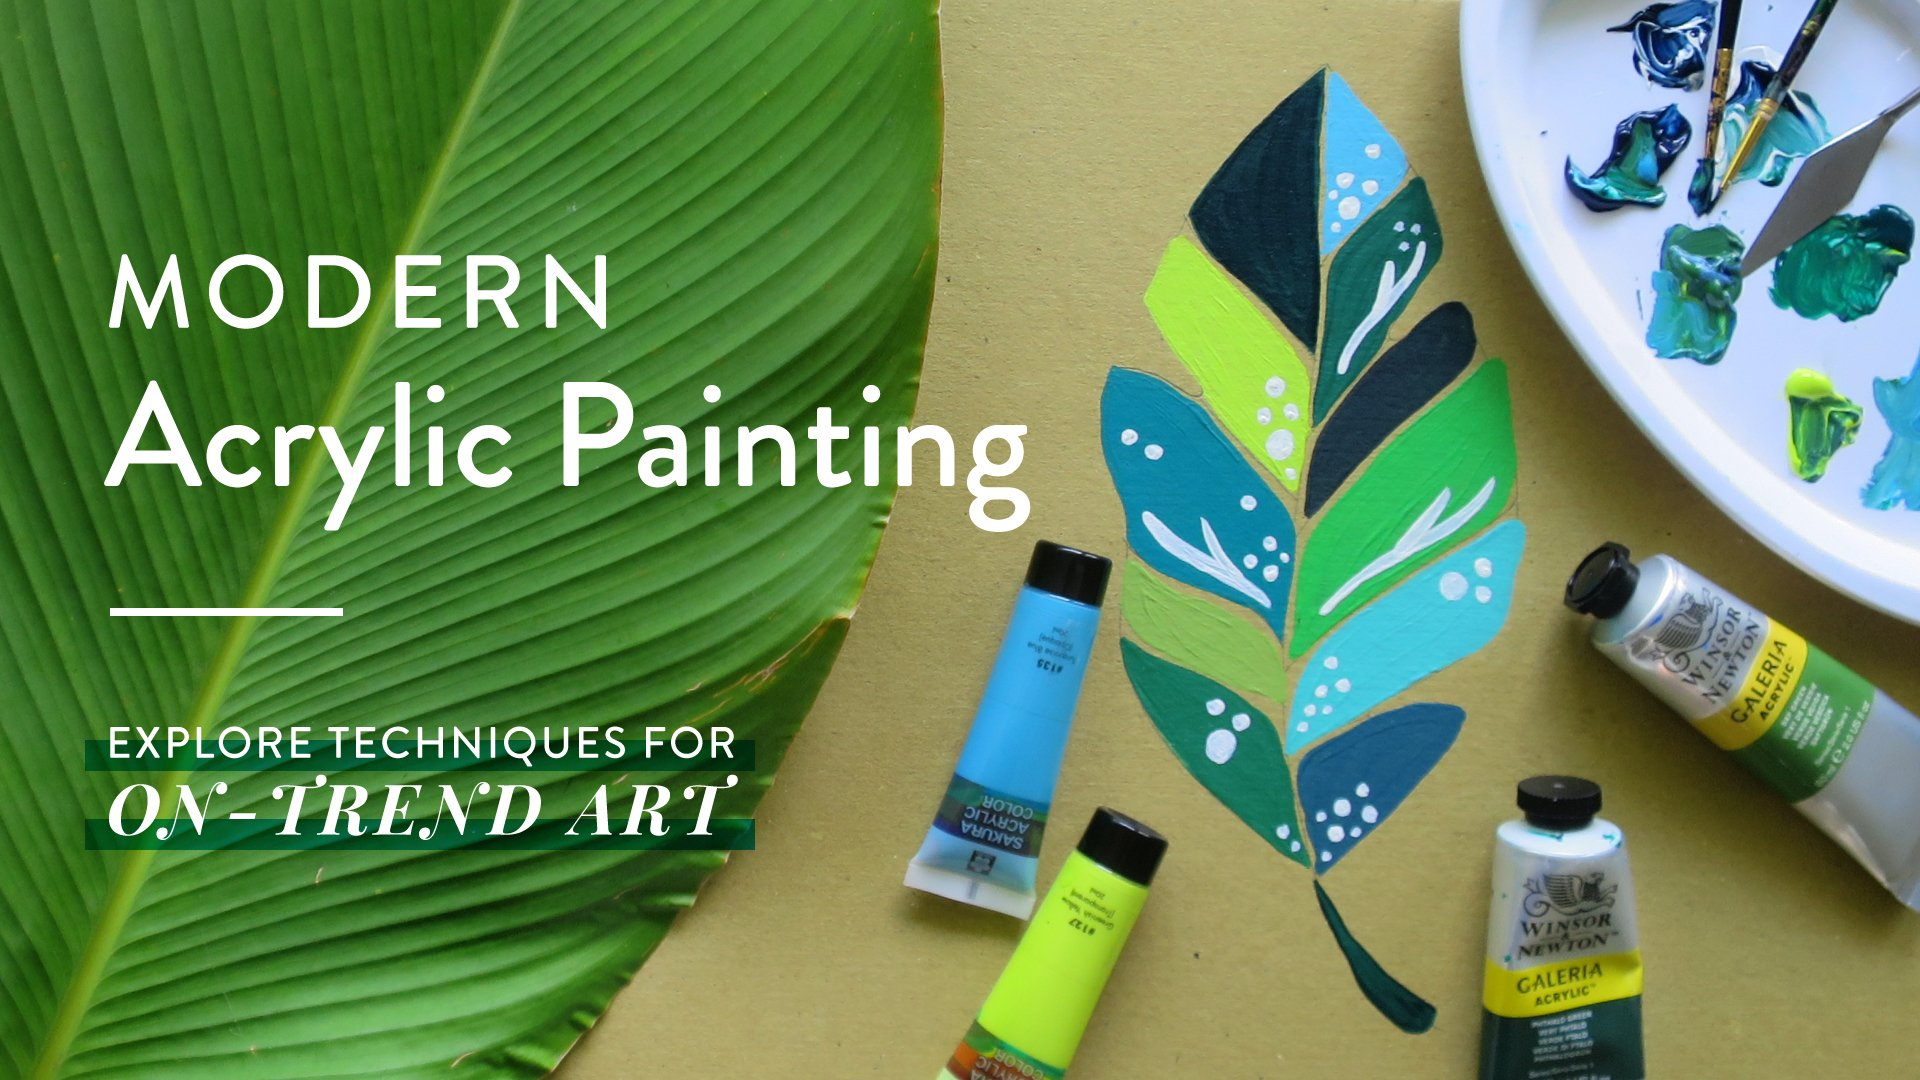 Modern Acrylic Painting: Explore Techniques to Create On-Trend Art